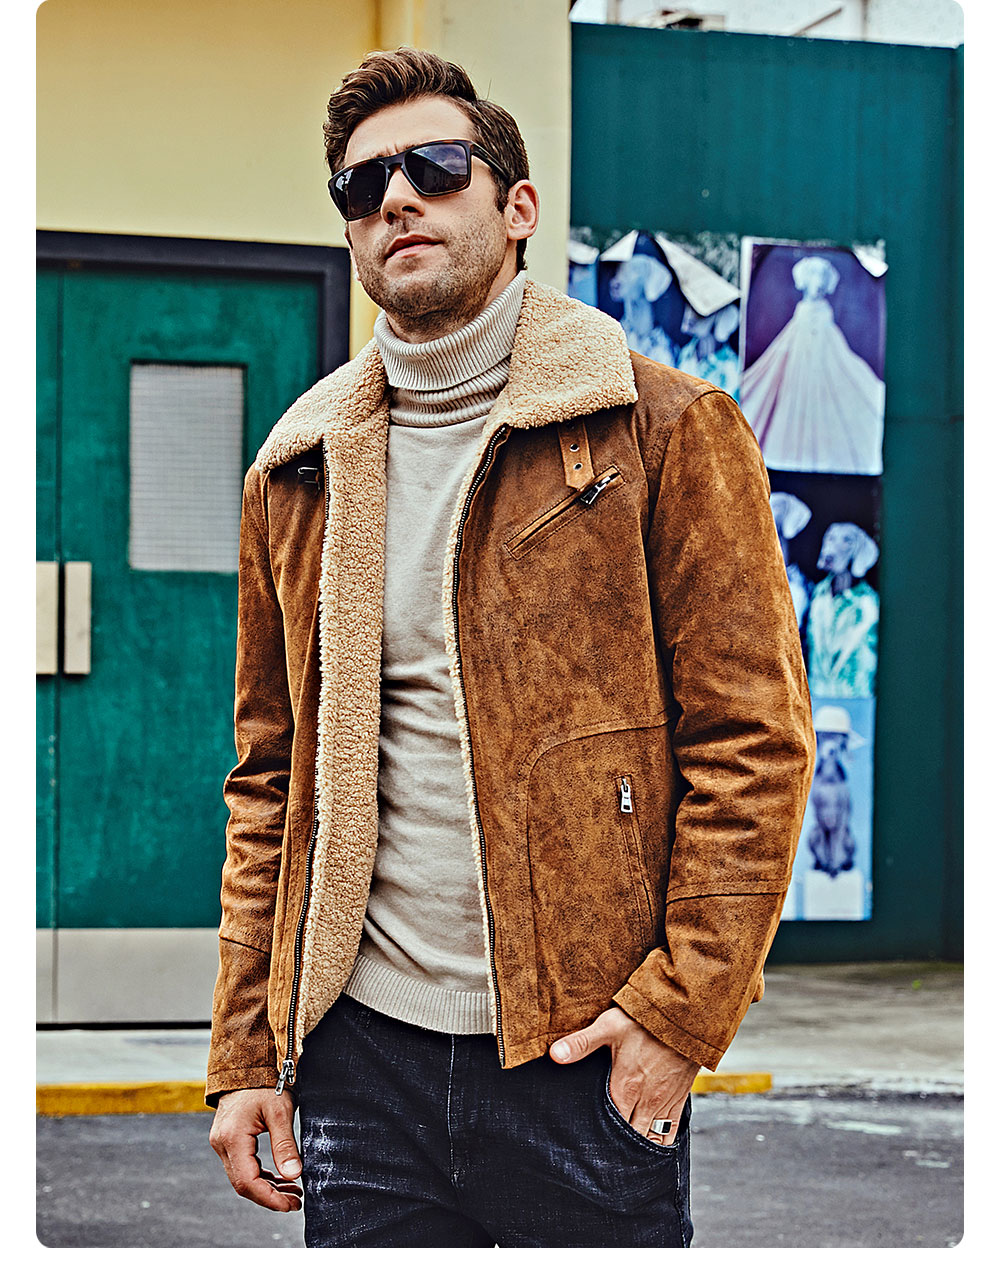 Hc27adf0bbbf74e378ebf78c0af1072daP FLAVOR New Men's Genuine Leather Motorcycle Jacket Pigskin with Faux Shearling Real Leather Jacket Bomber Coat Men